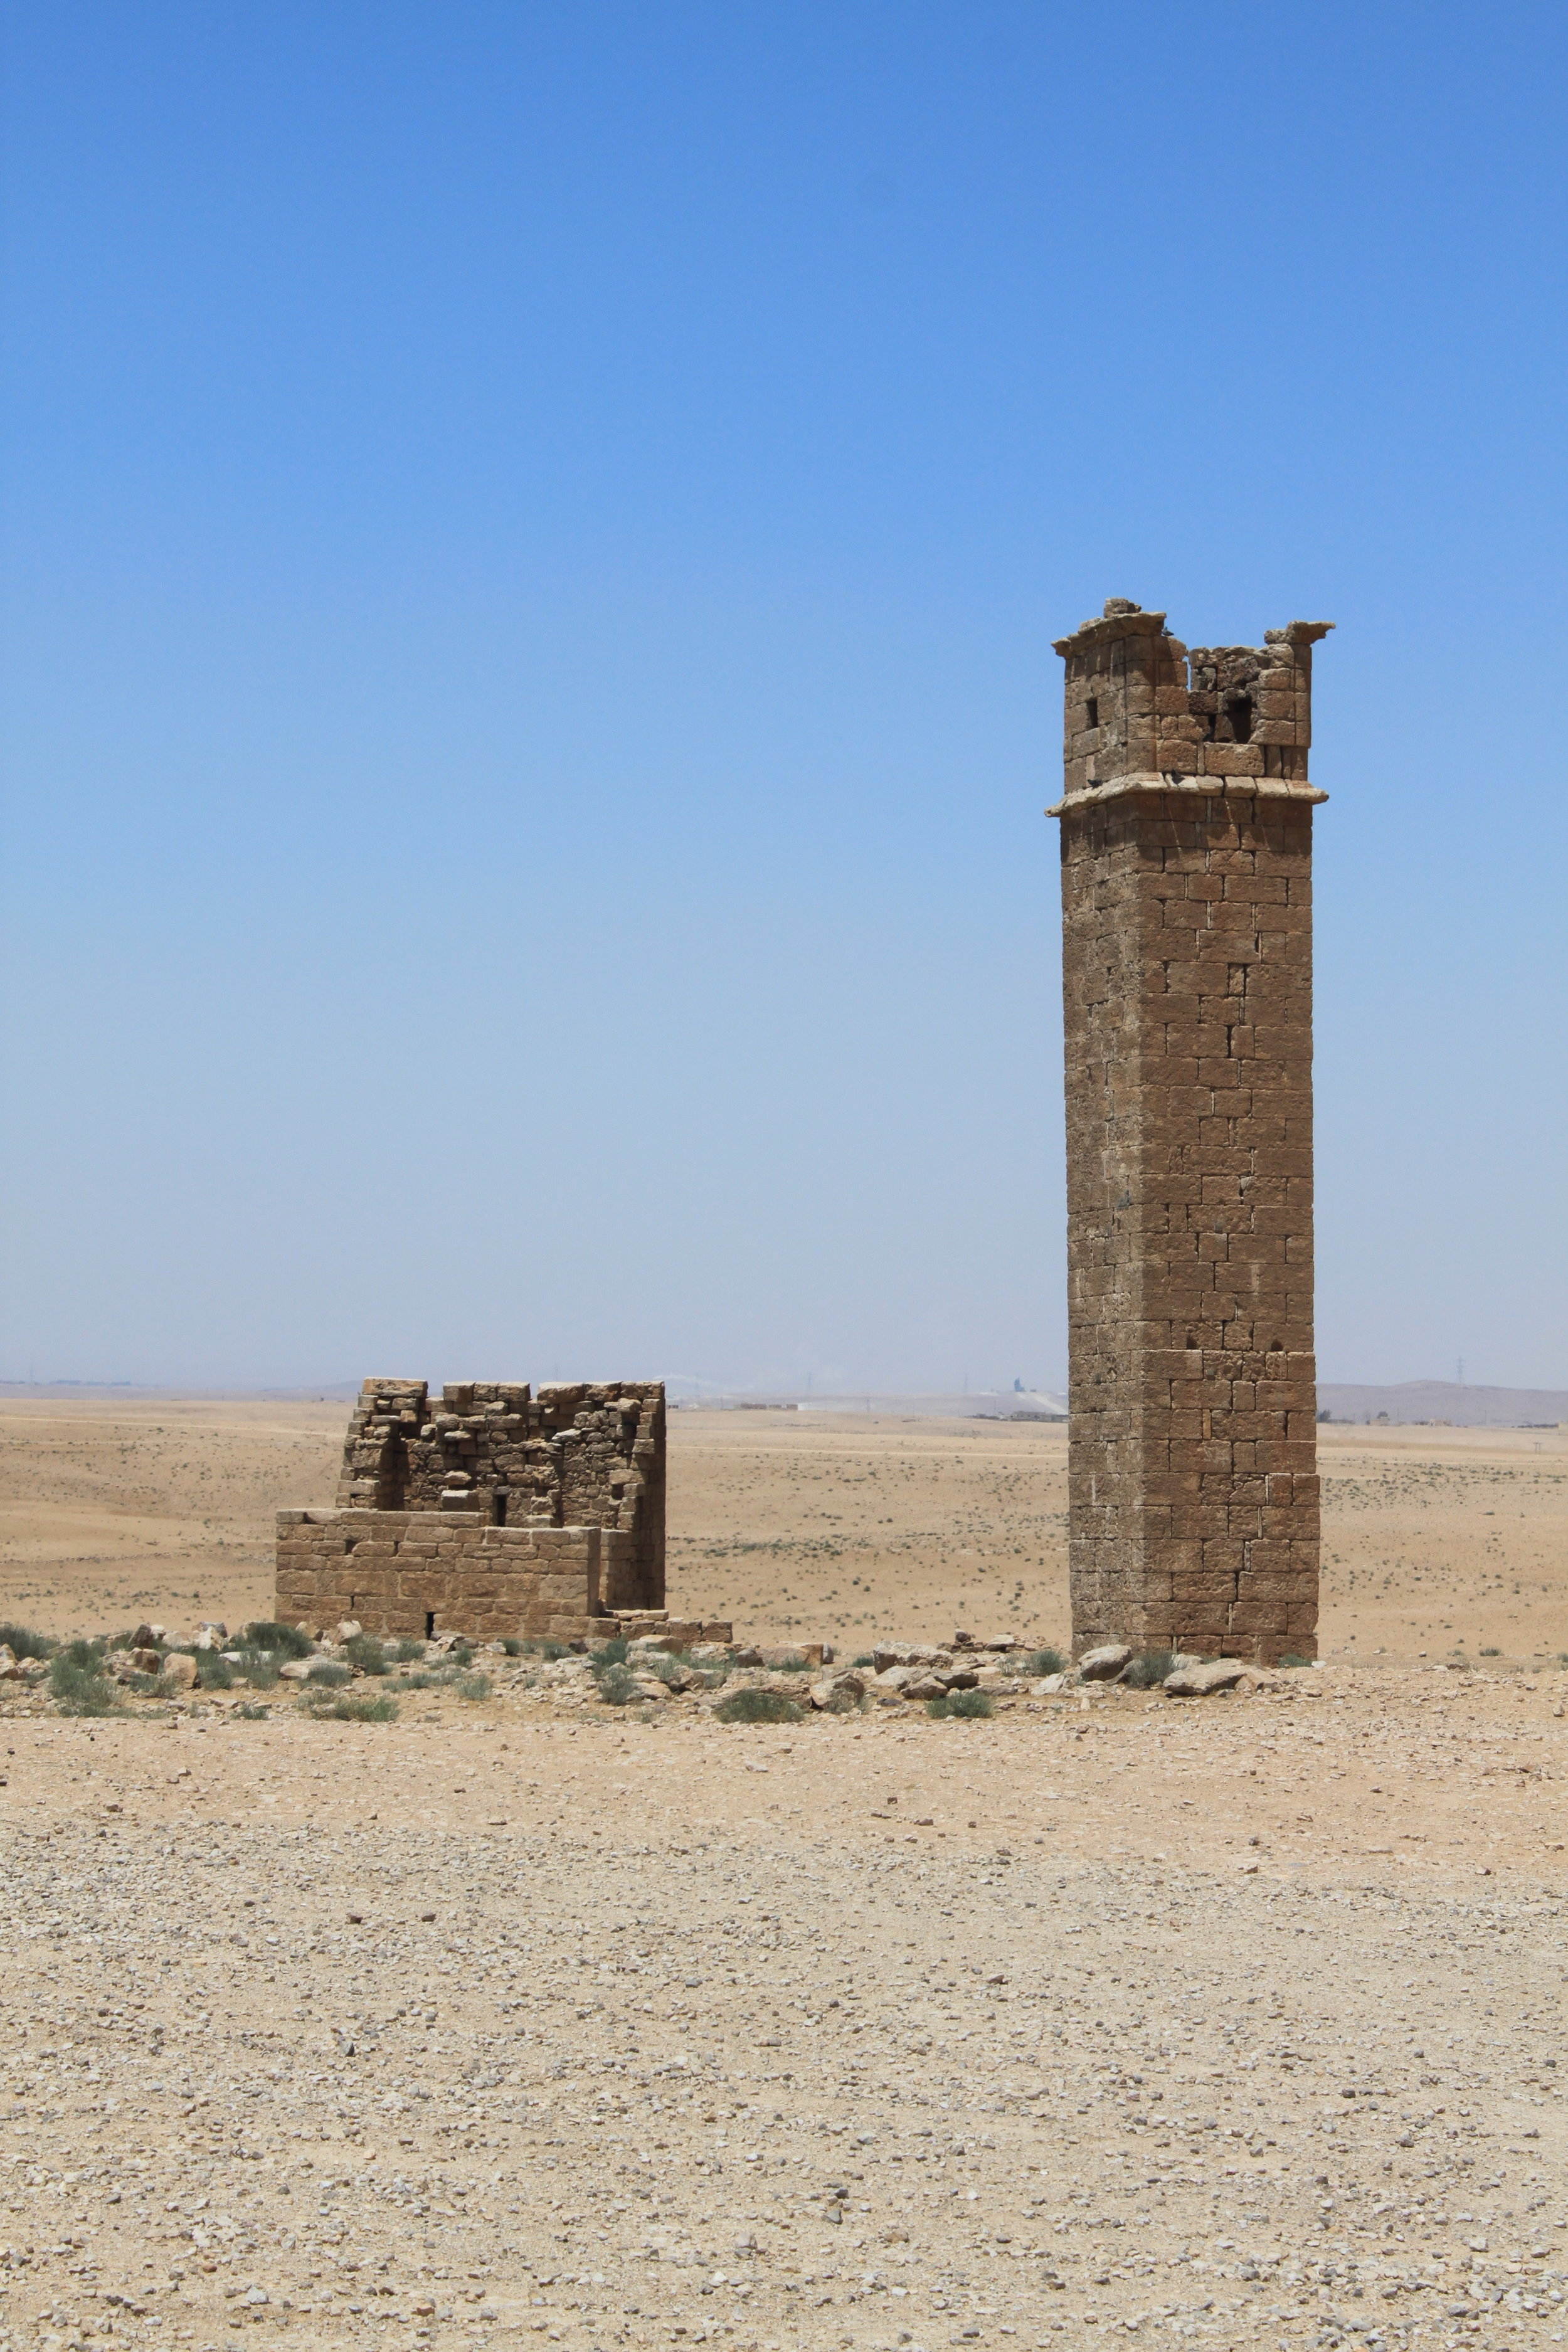 Stylite tower at Um er-Rasas. Photograph by Professor Bjorn Anderson.